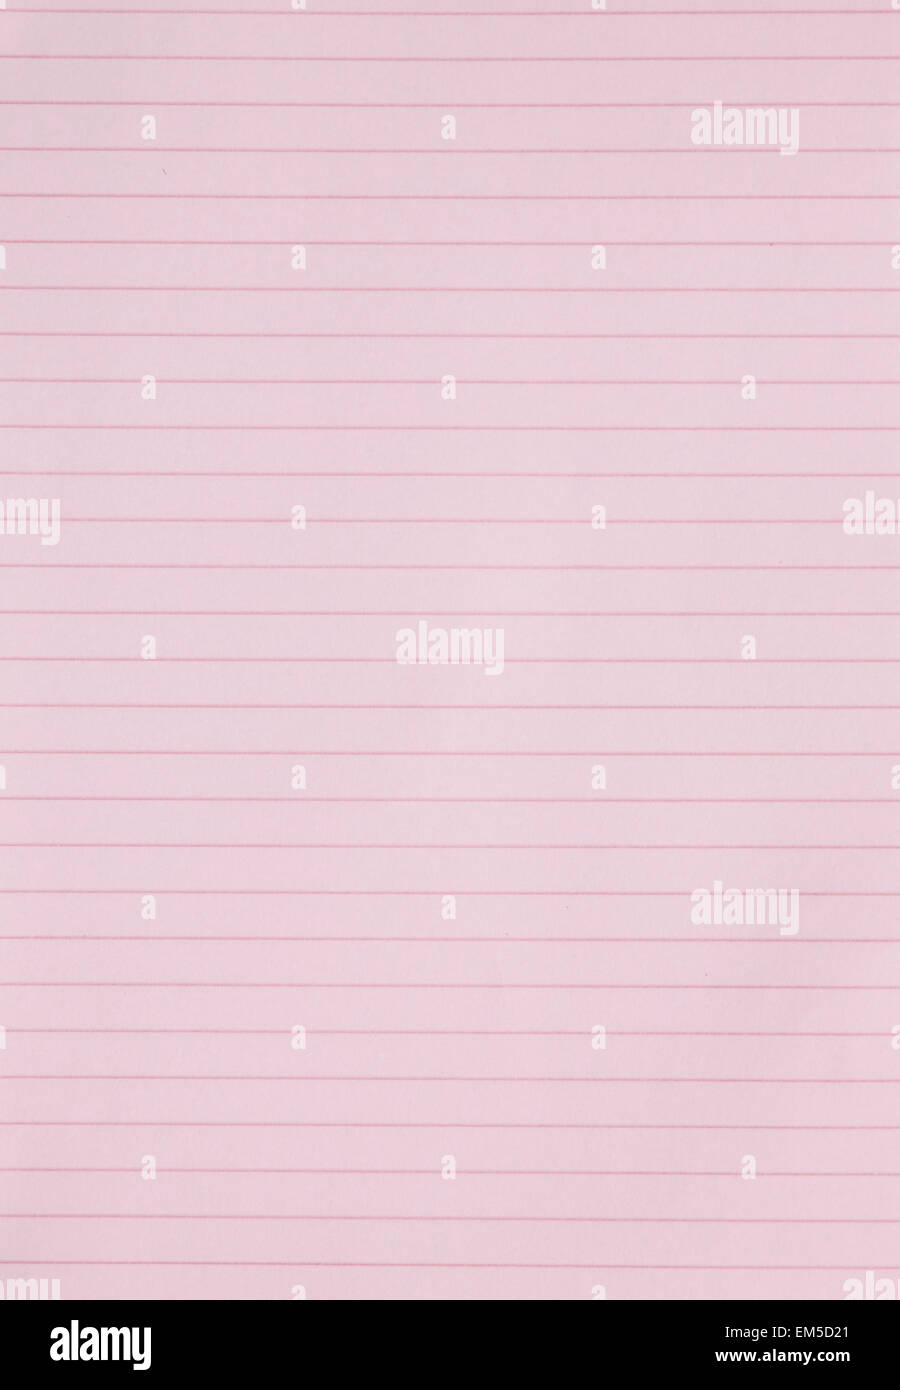 Blank Pink Lined Paper Sheet Background Or Textured  Lined Blank Paper